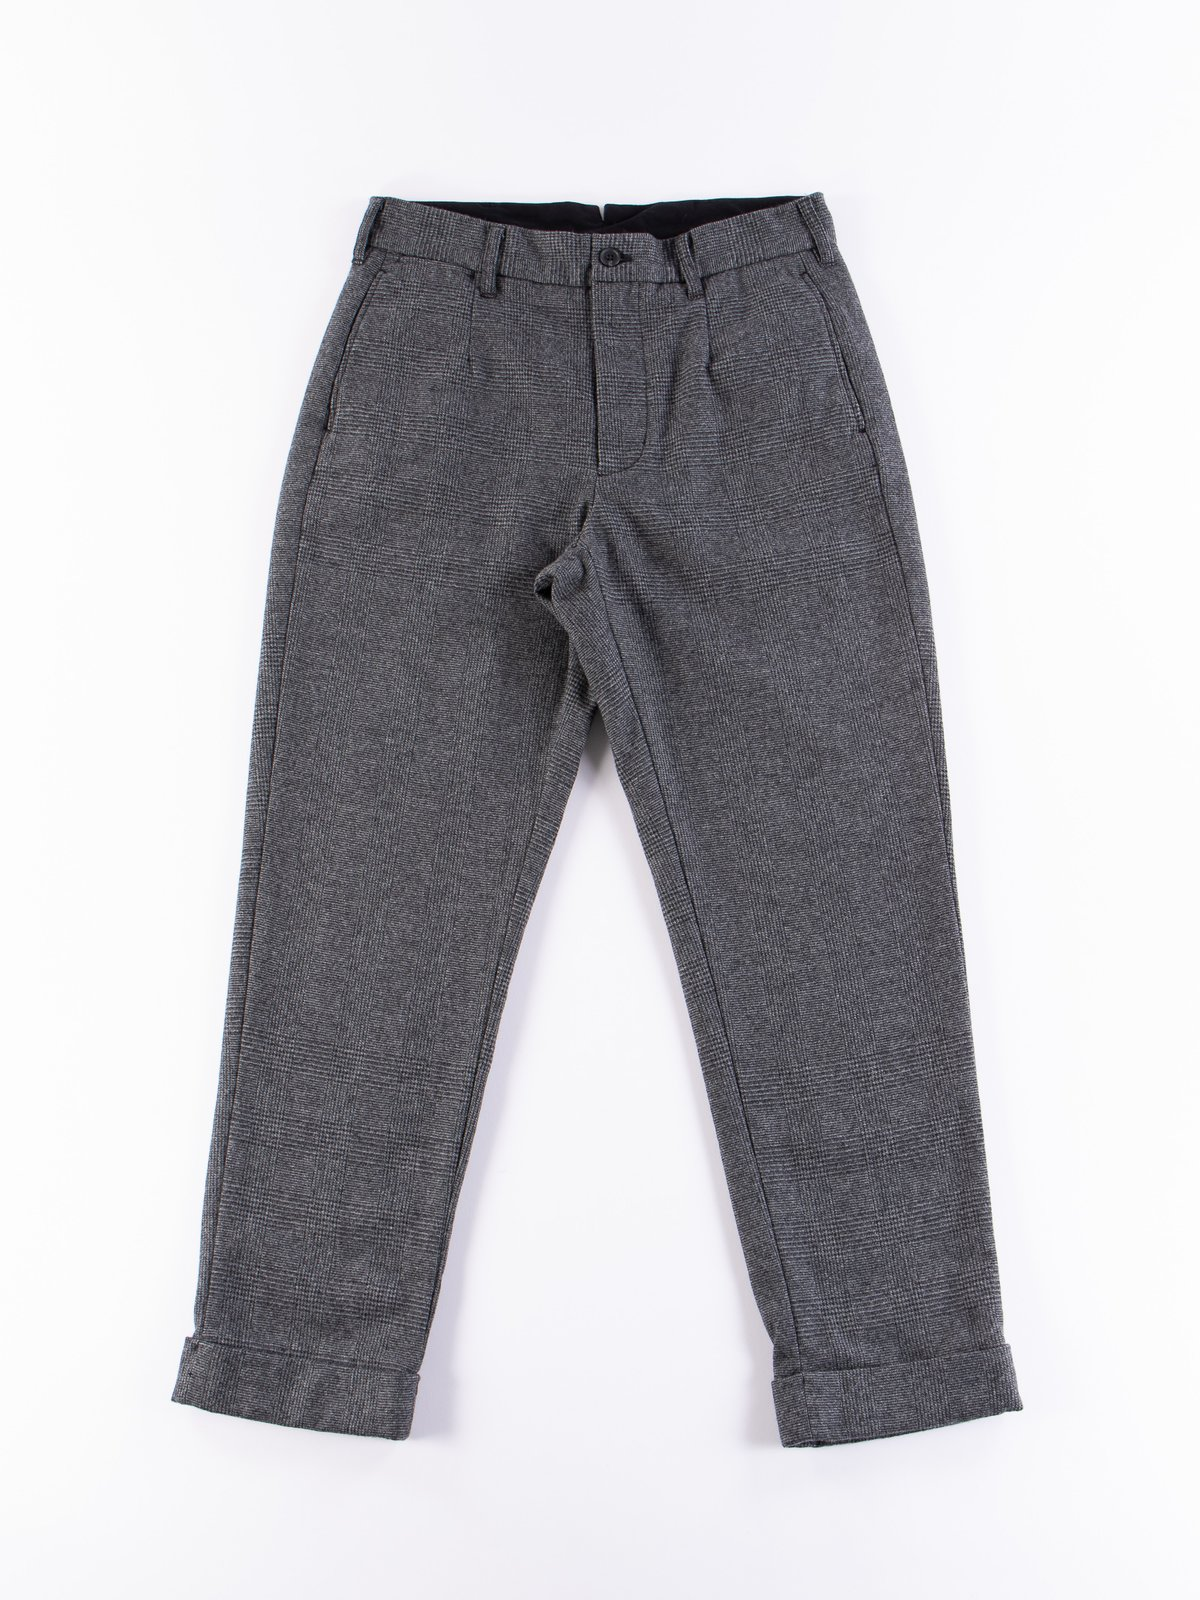 Grey Wool Glen Plaid Stripe Andover Pant - Image 1